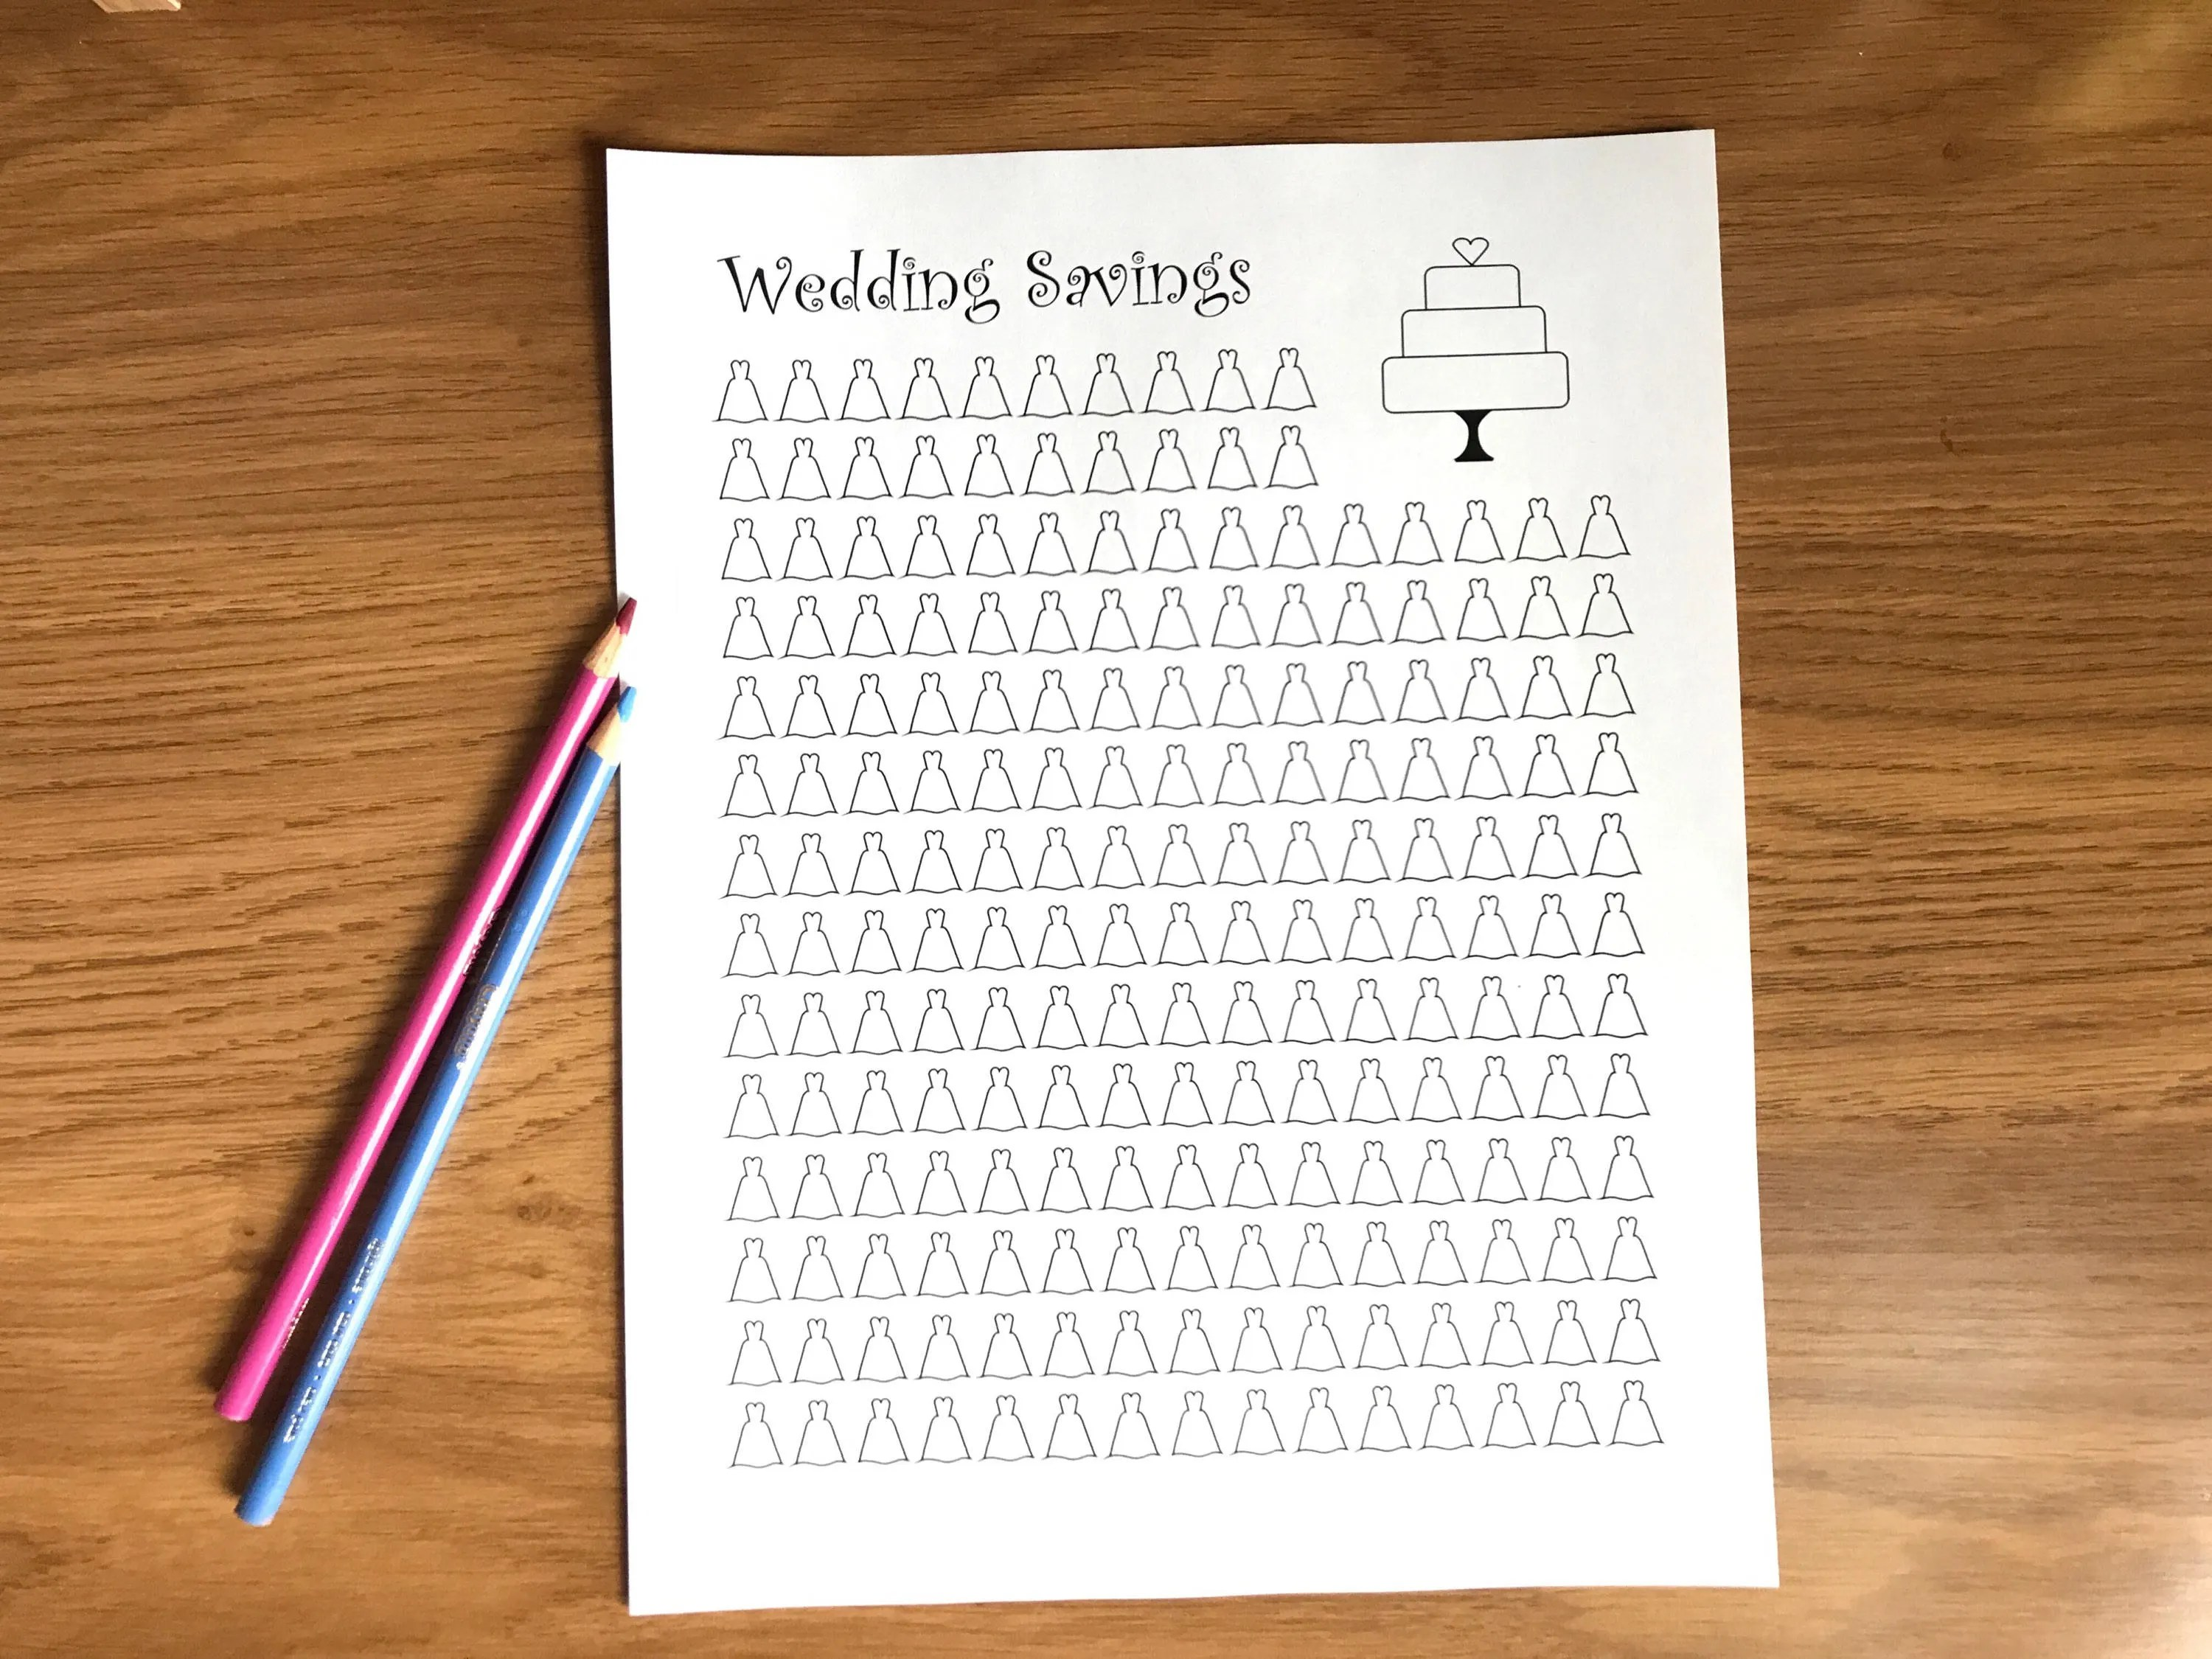 Wedding Savings Tracker Printable Coloring Sheet